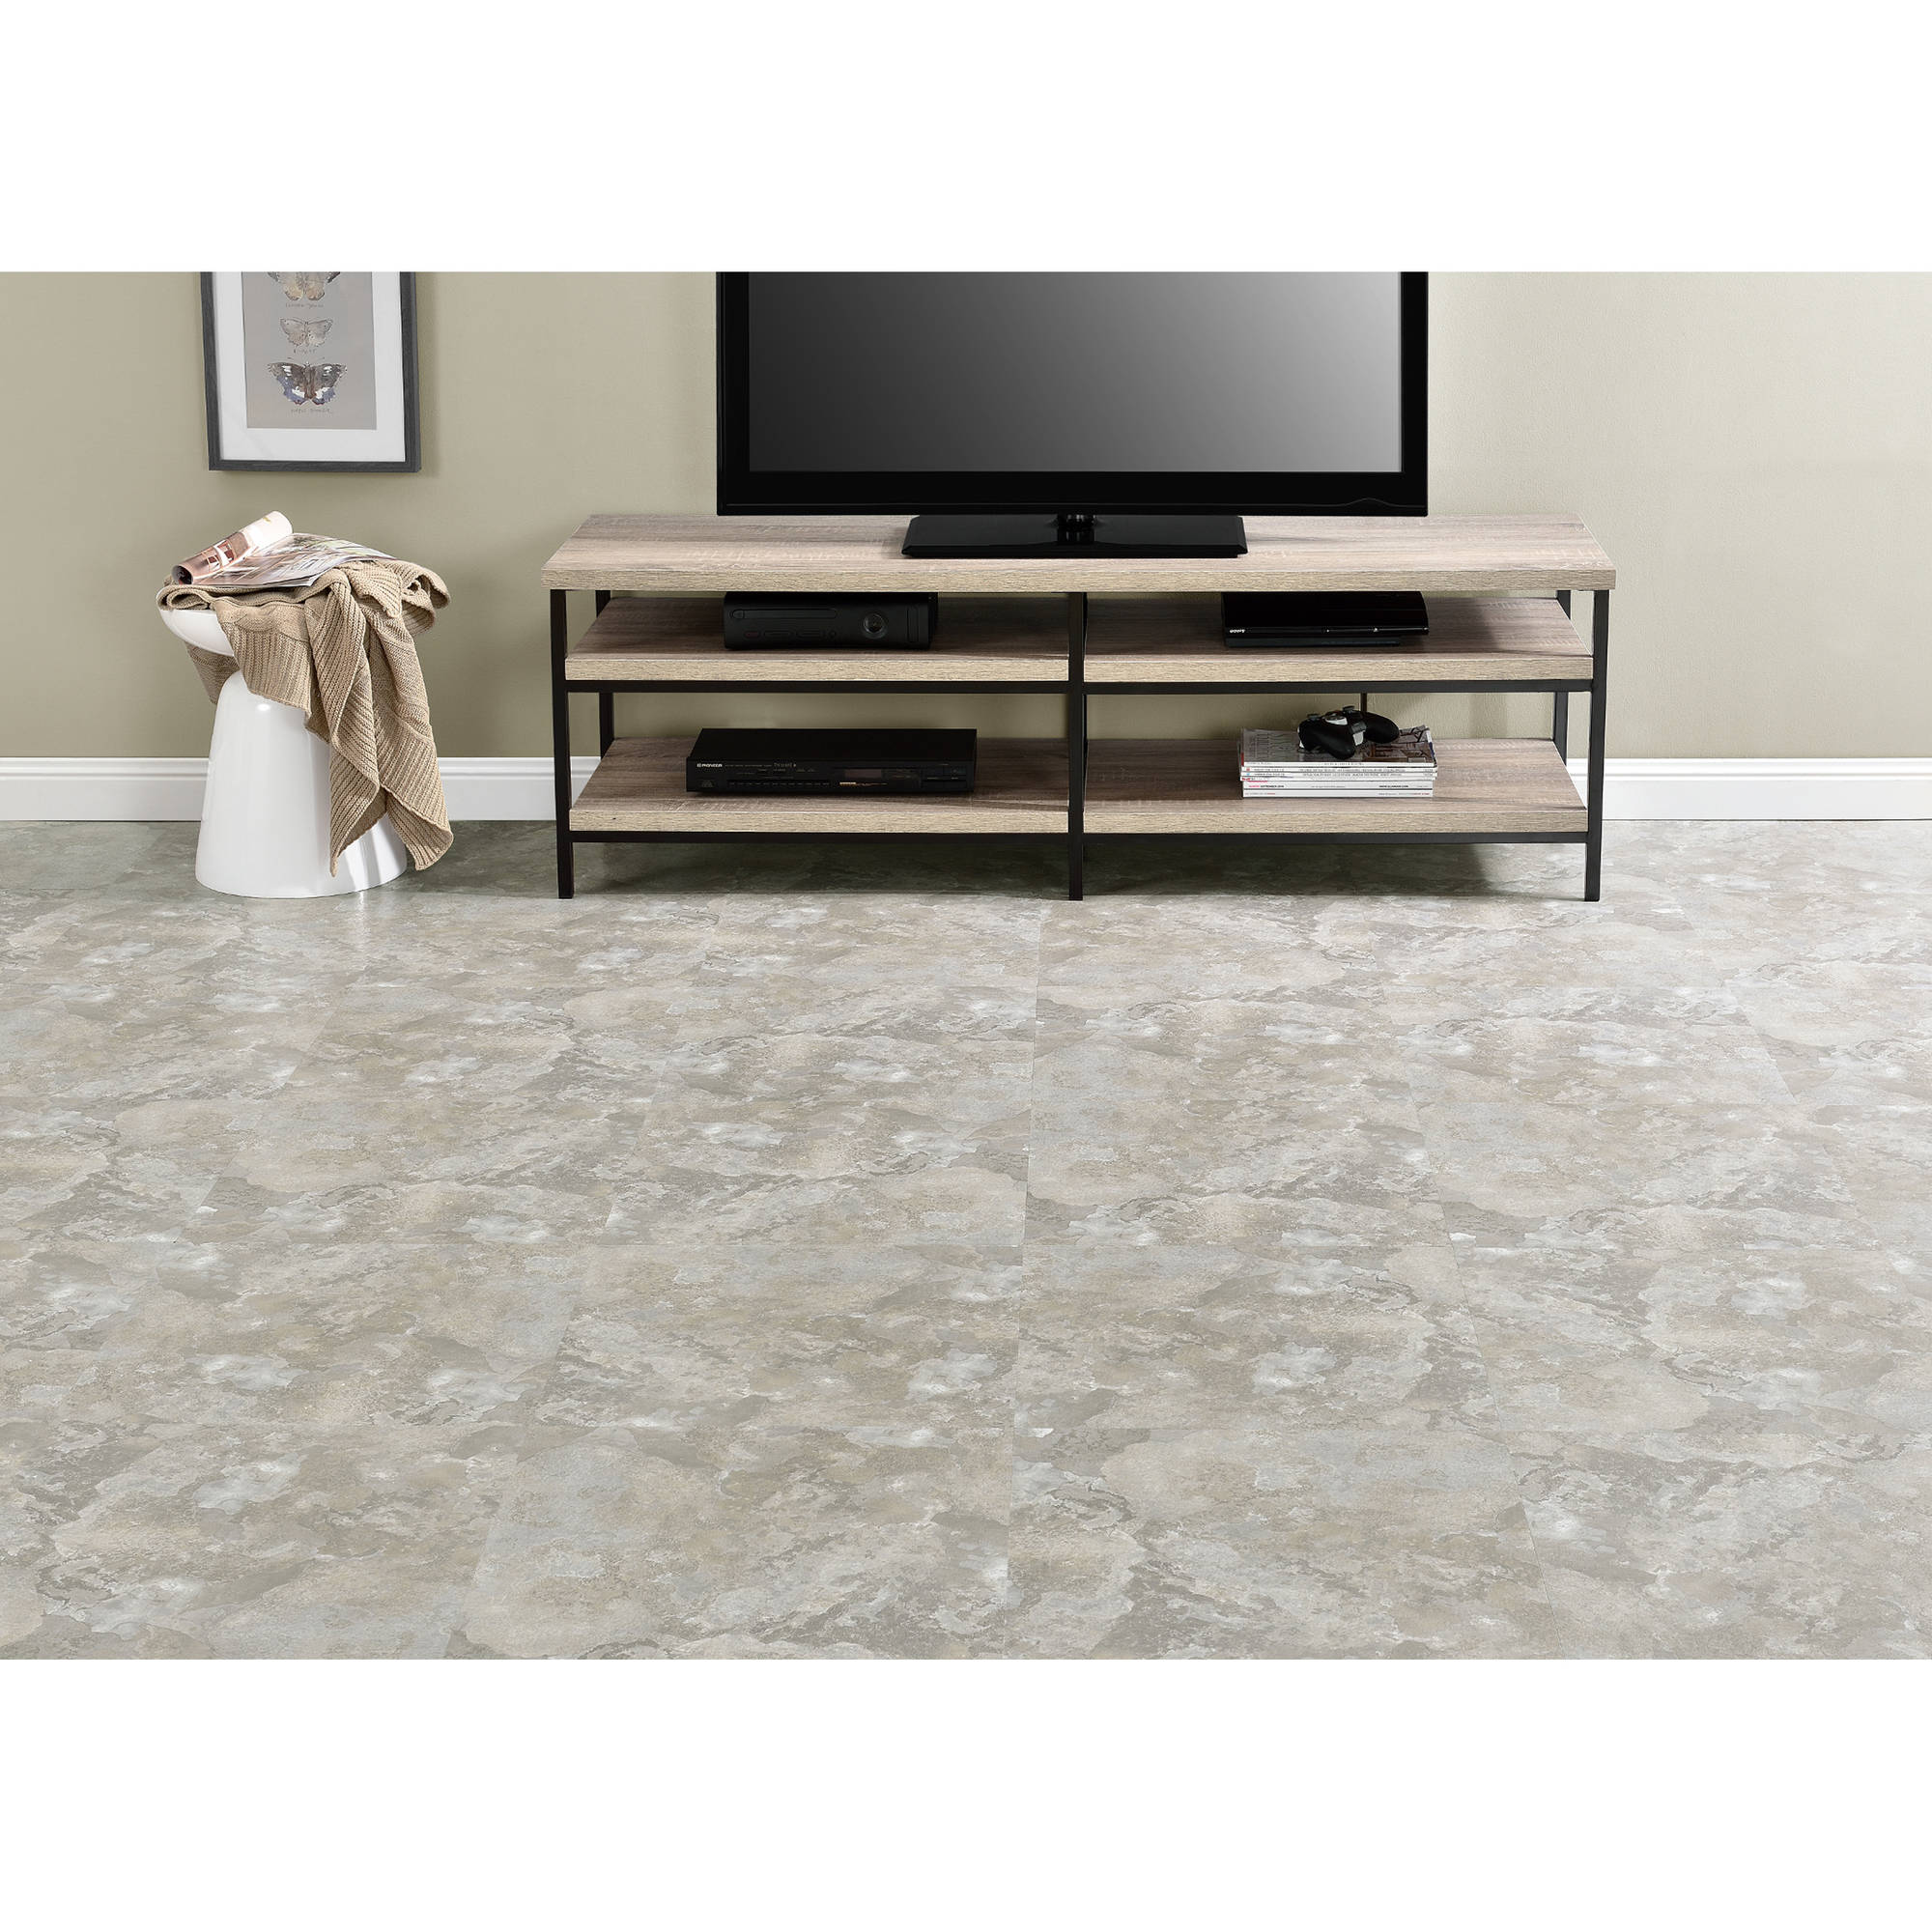 18 floor tile gallery home flooring design majestic light gray slate 18x18 20mm vinyl floor tile 10 tiles majestic light gray slate 18x18 doublecrazyfo Choice Image